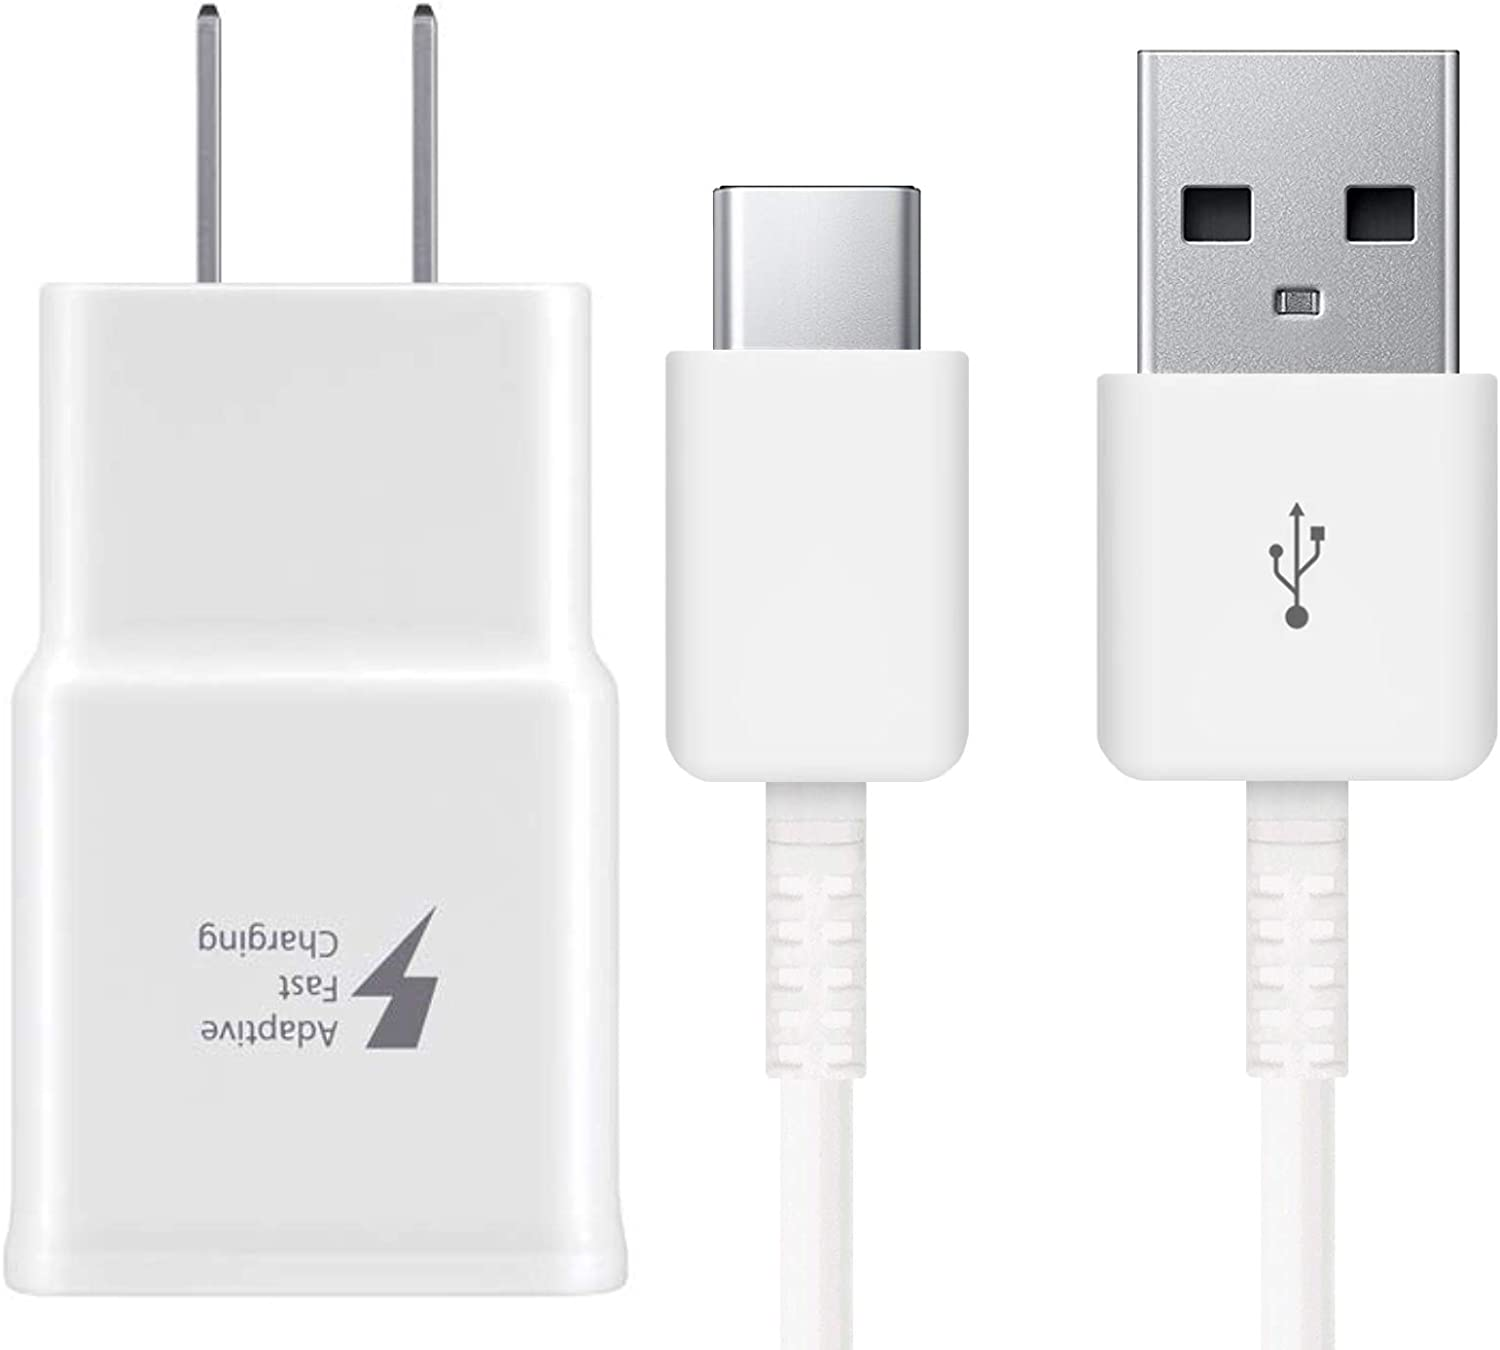 Adaptive Fast Charger for Galaxy S8, S8+, S9, S9+, S10+, Note 8, Note 9 USB-C 3.1 Type-C Cable Kit Fast Charging USB Wall Charger AC Home Power Adapter [1 Wall Charger + 4 FT Type-C Cable] (White)